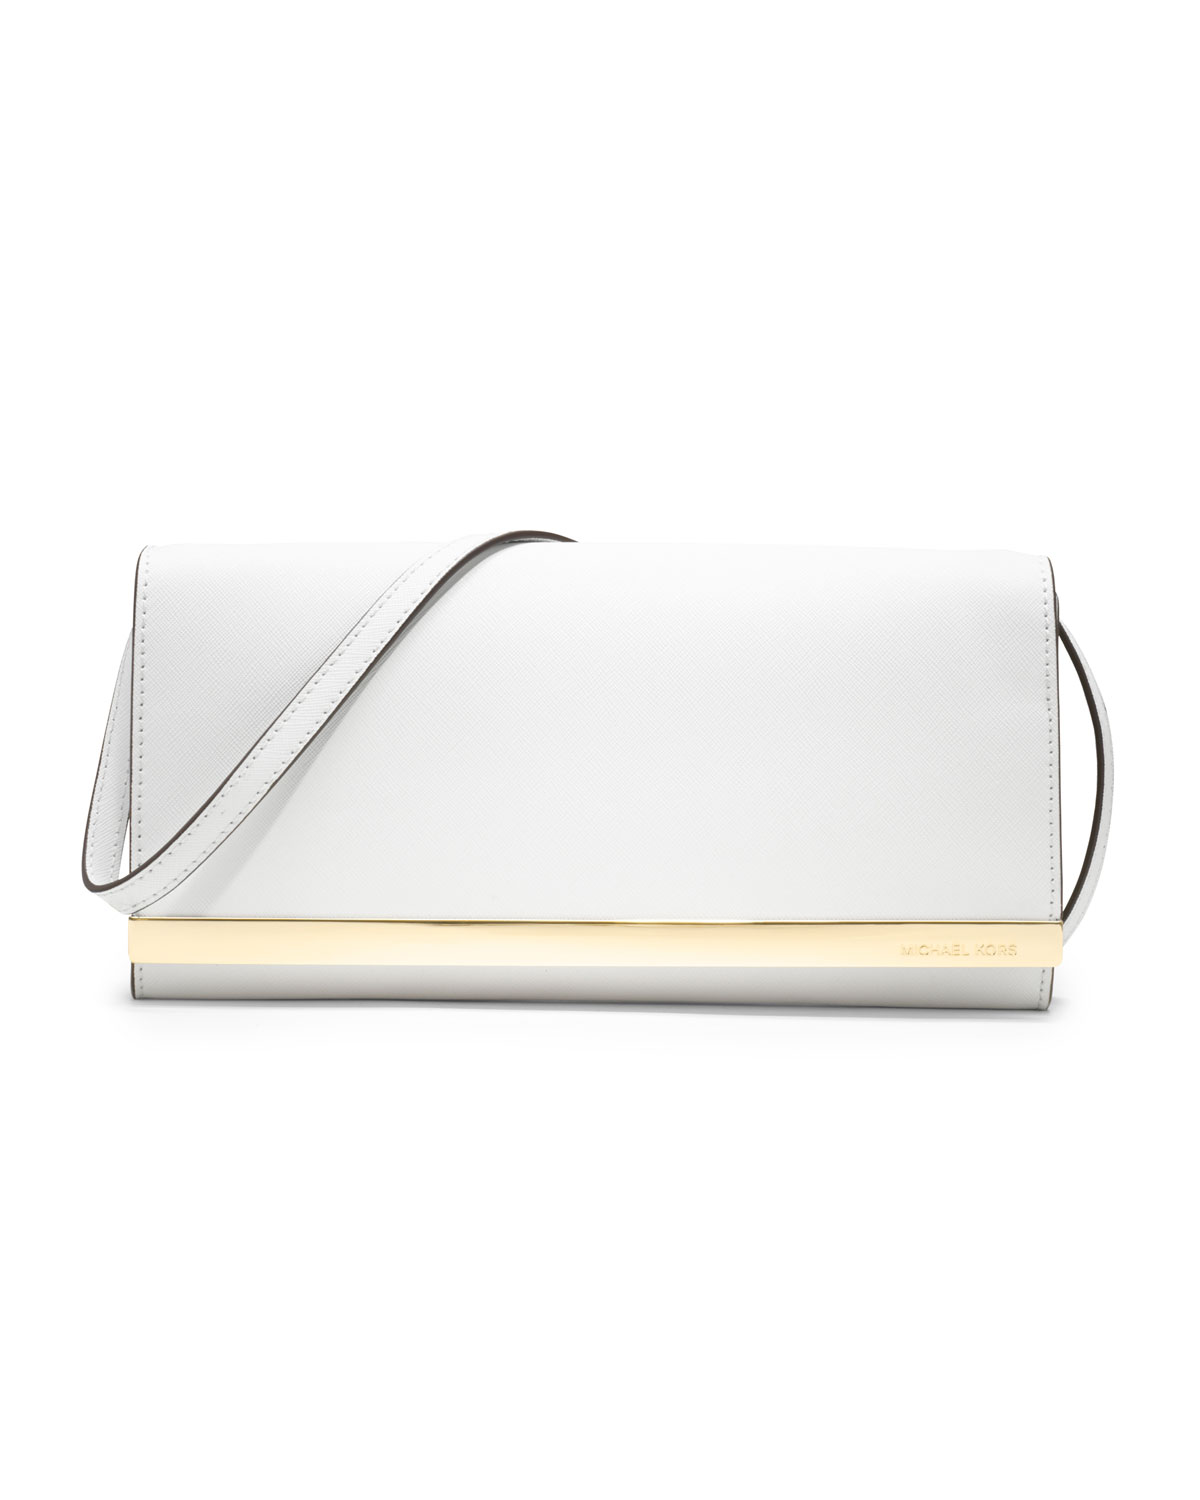 michael kors tilda saffiano clutch in white lyst. Black Bedroom Furniture Sets. Home Design Ideas